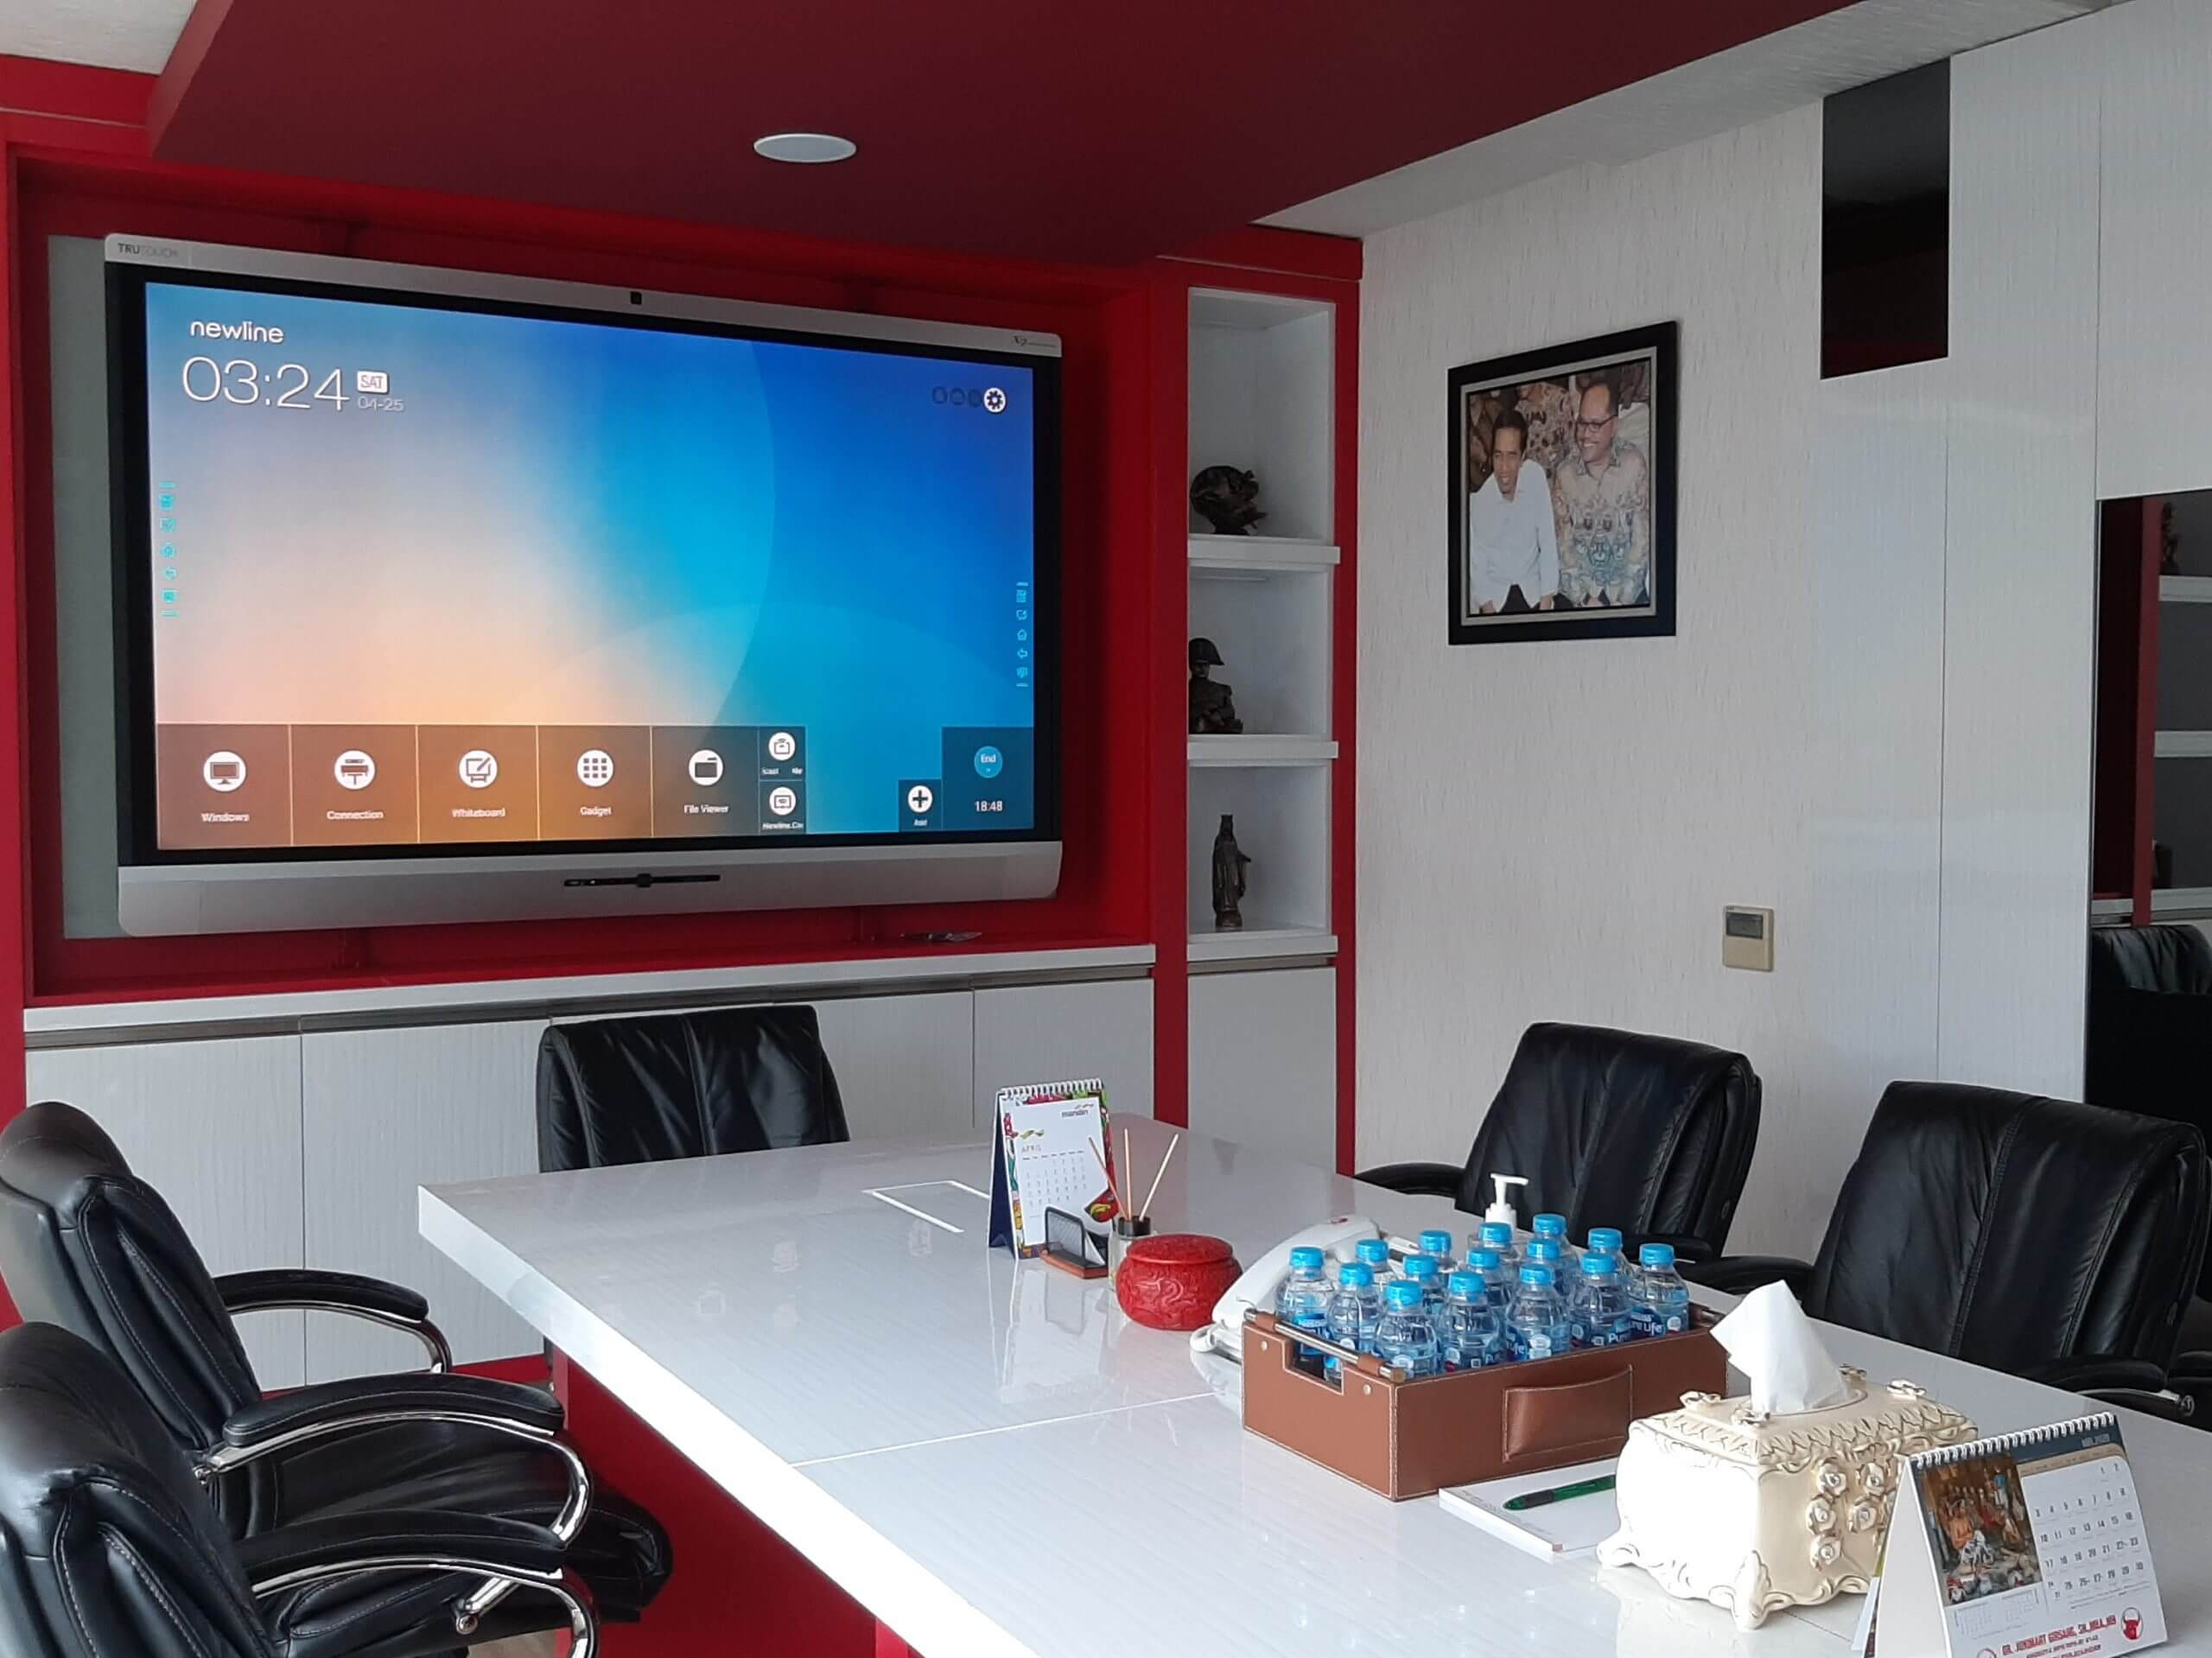 meeting room with smart display